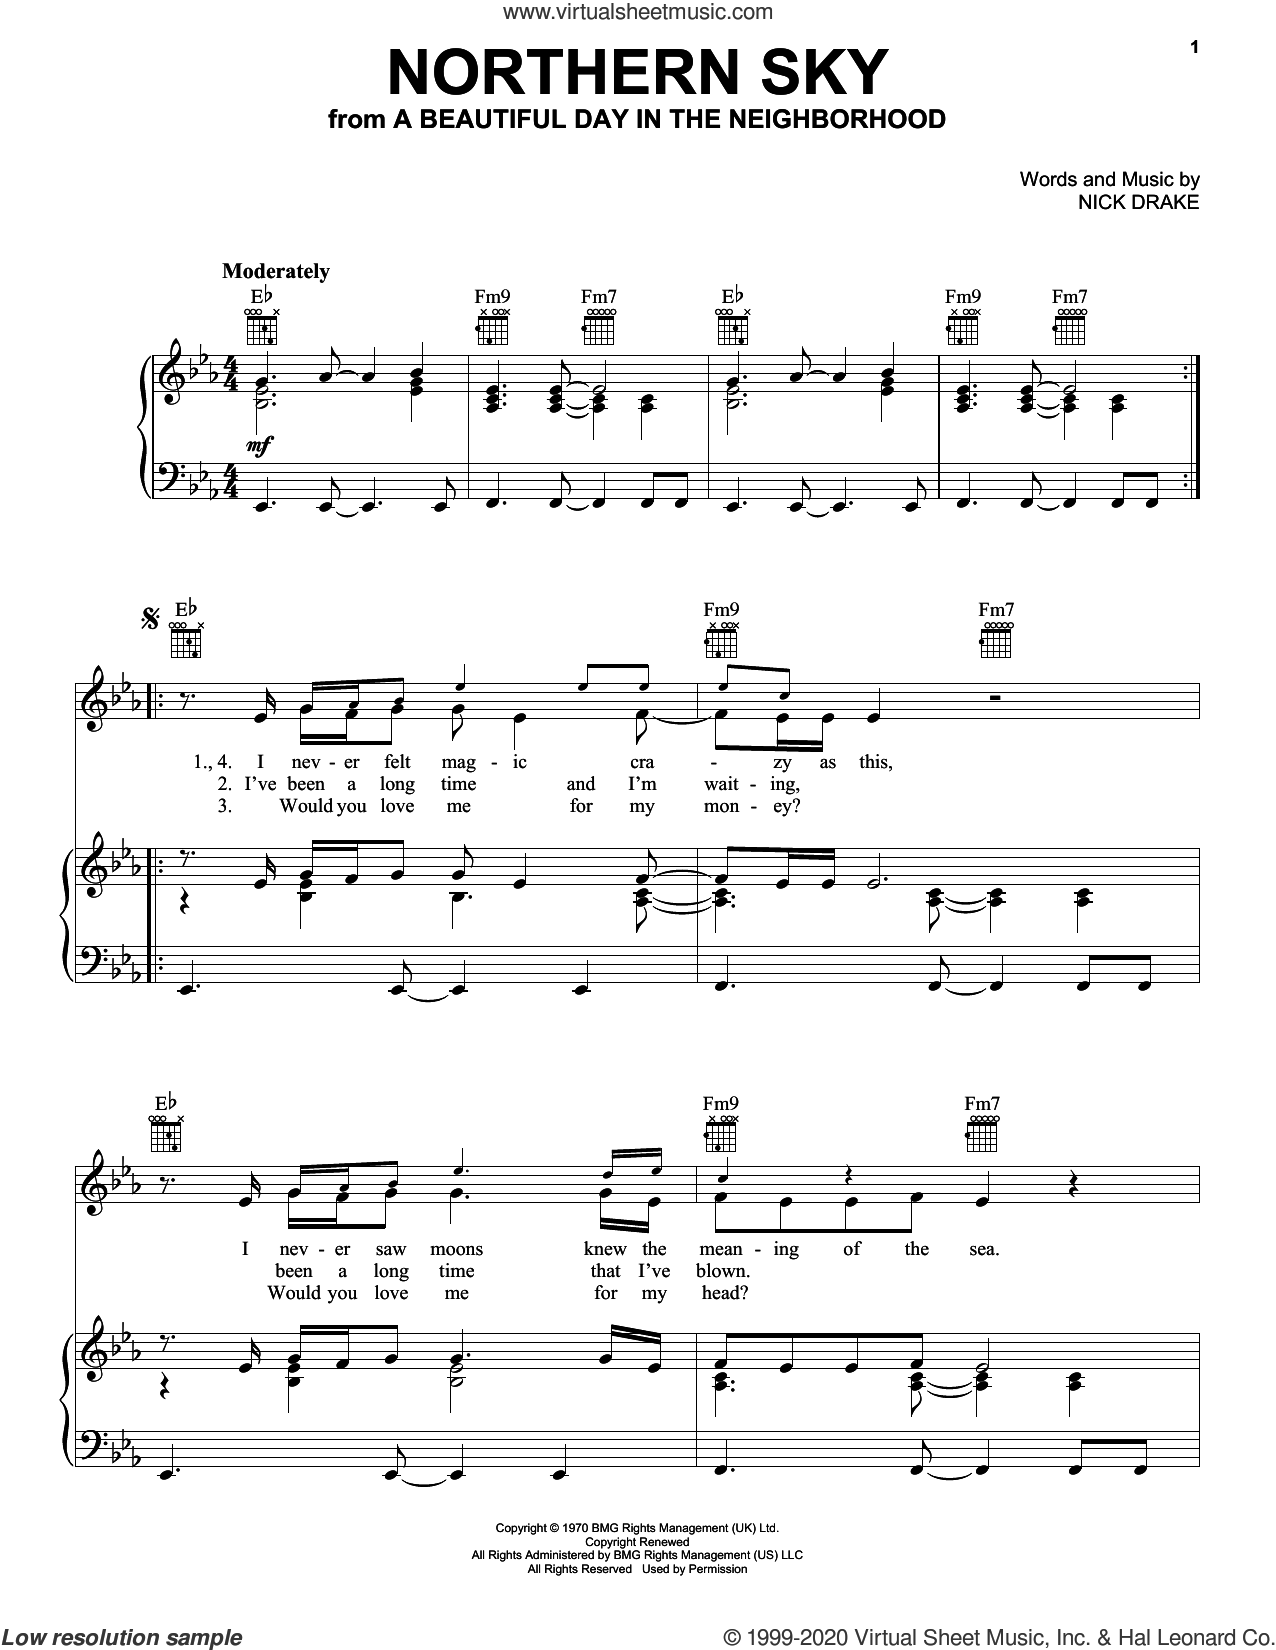 Northern Sky (from A Beautiful Day in the Neighborhood) sheet music for voice, piano or guitar by Nick Drake, intermediate skill level